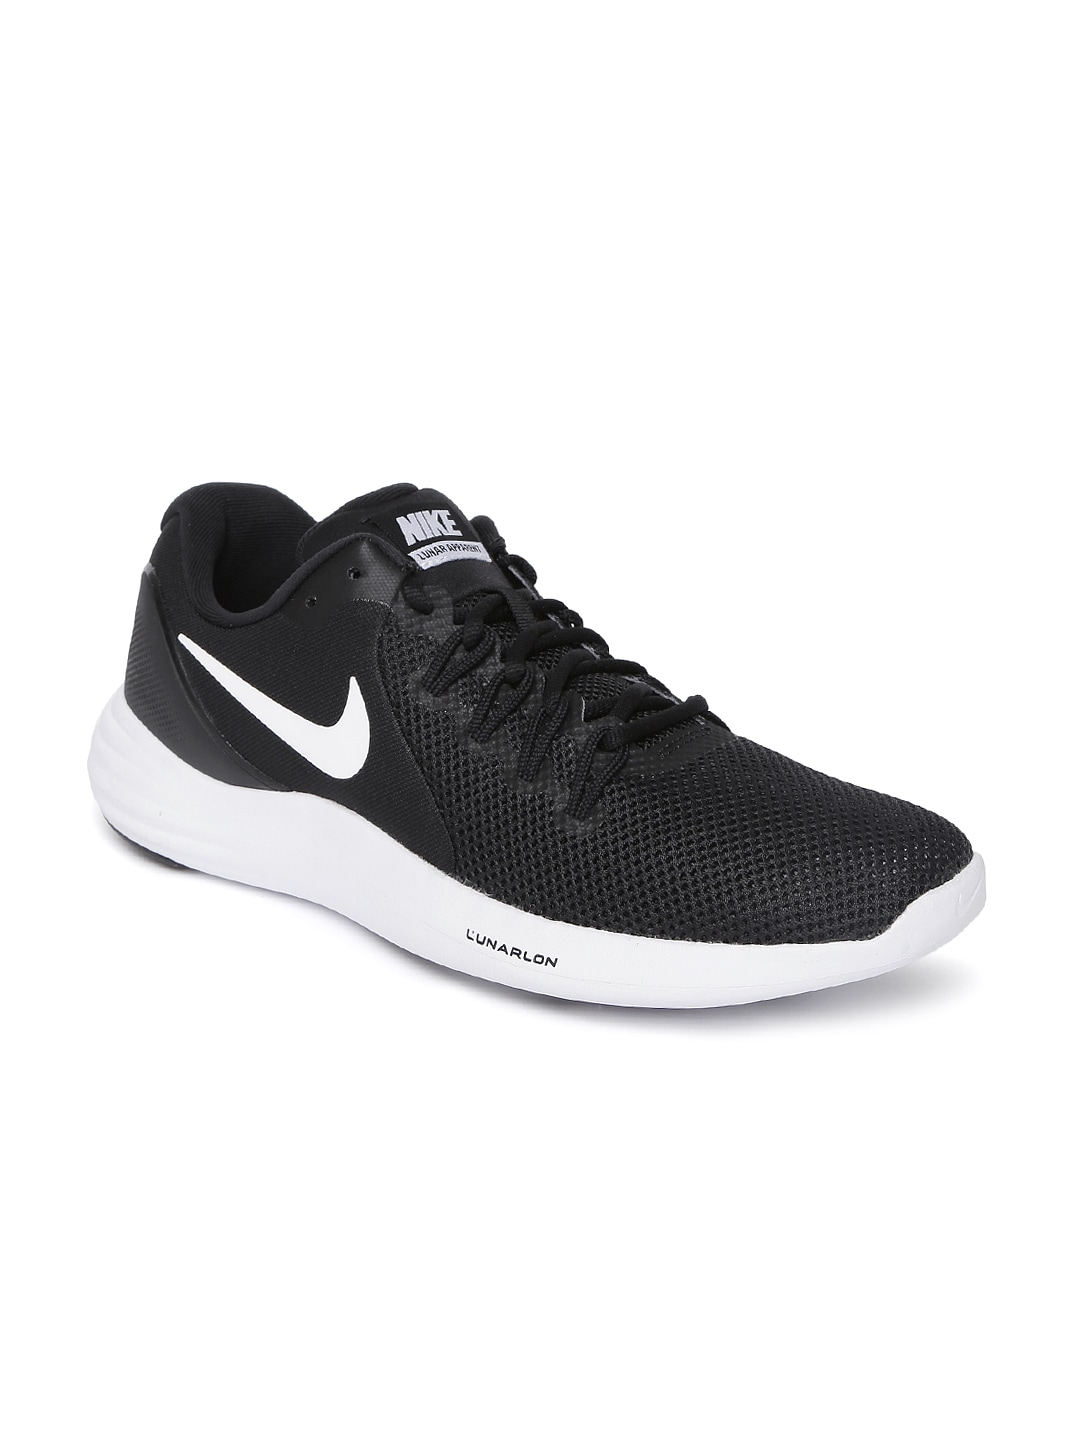 competitive price ba227 9cd67 11513325169143-Nike-Men-Black-LUNAR-APPARENT-Running-Shoes -5391513325169069-1.jpg